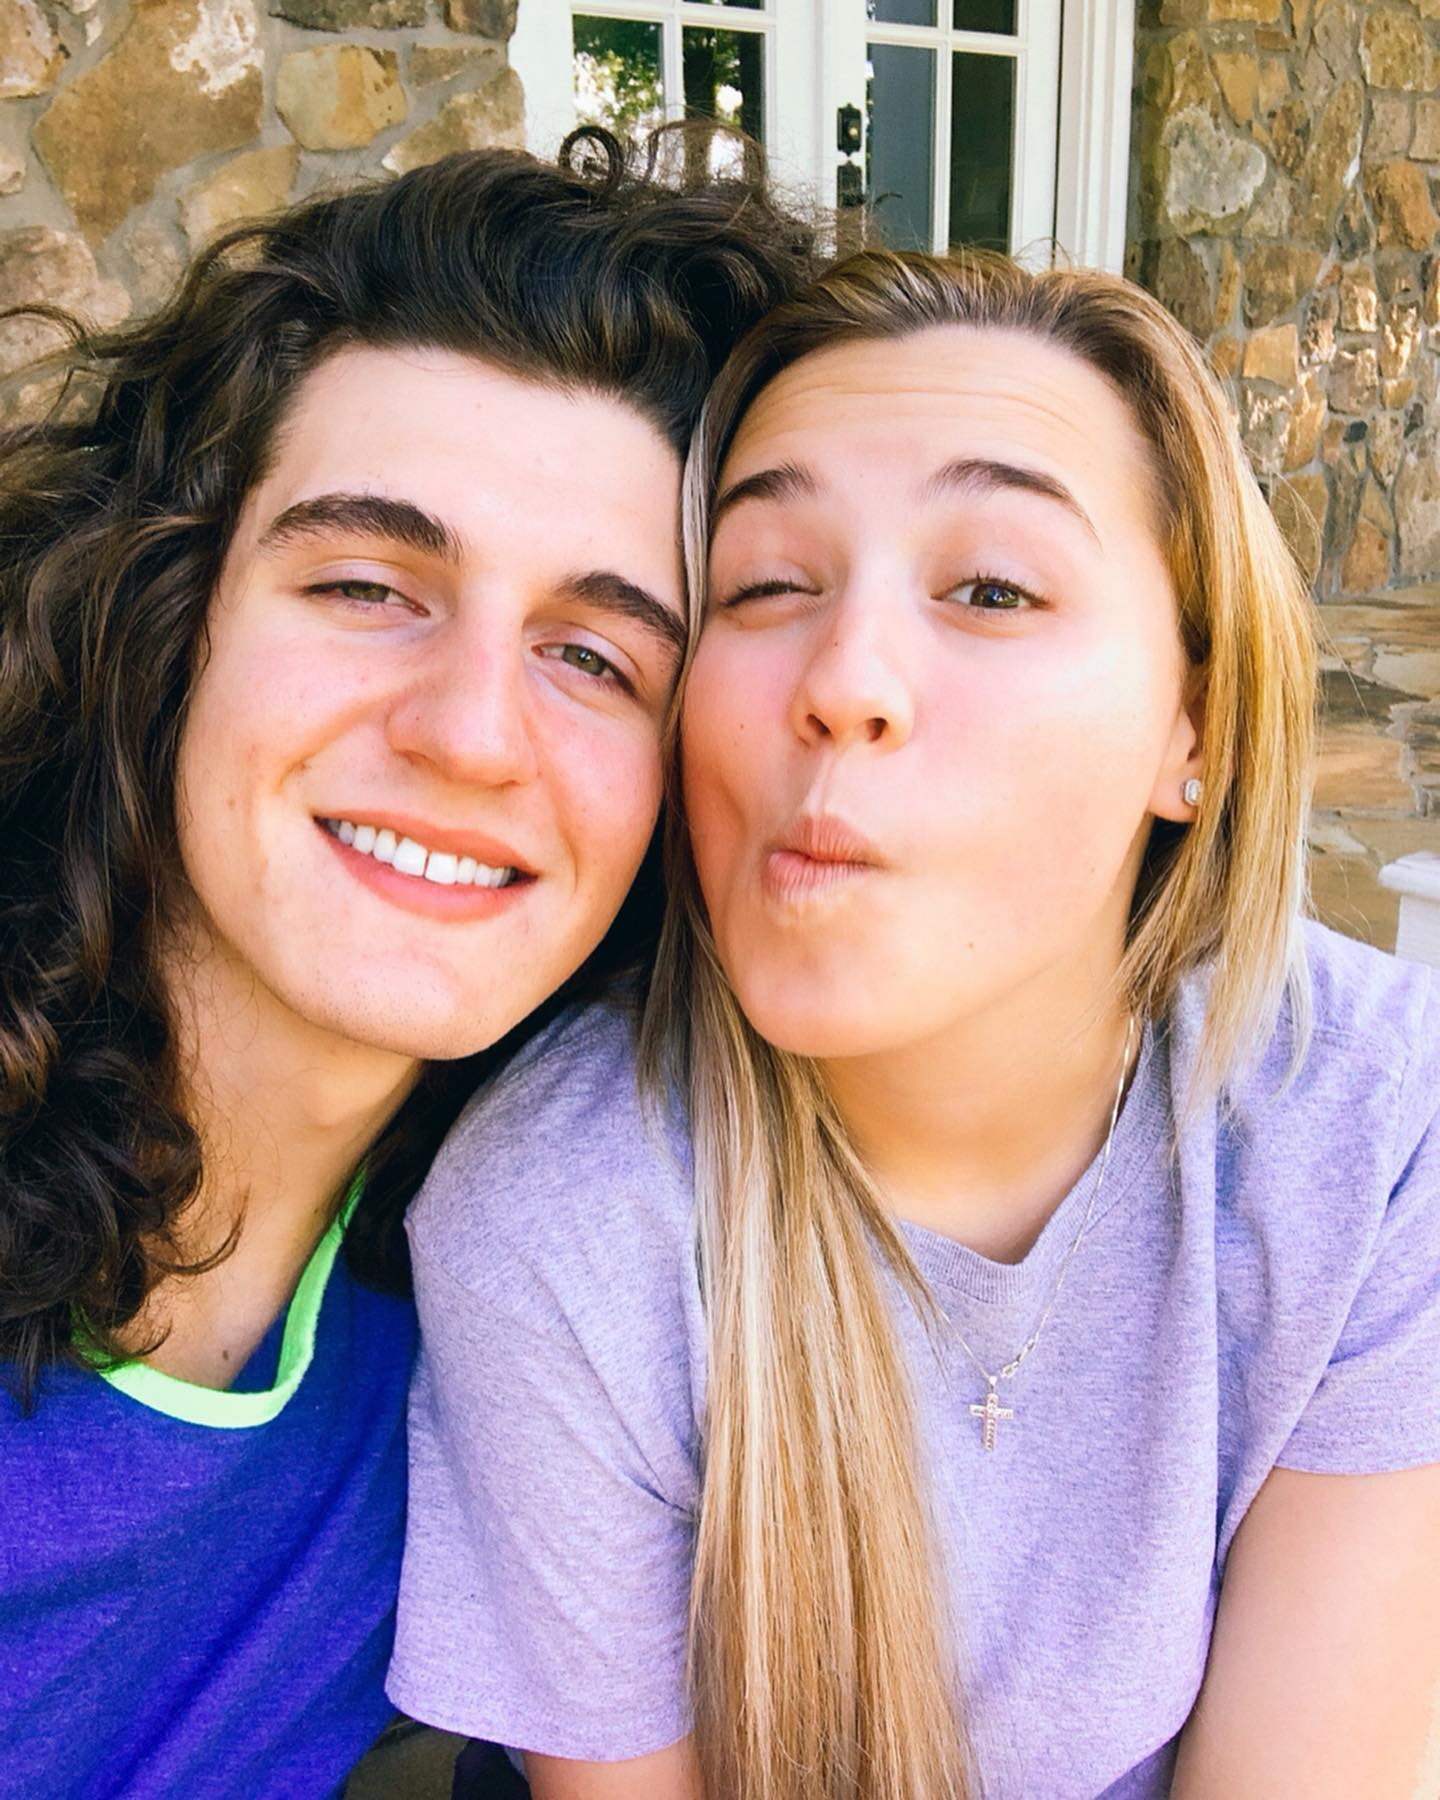 CADE FOEHNER AND GABBY BARRETT IN EAST TEXAS ON MAY 15, 2019.